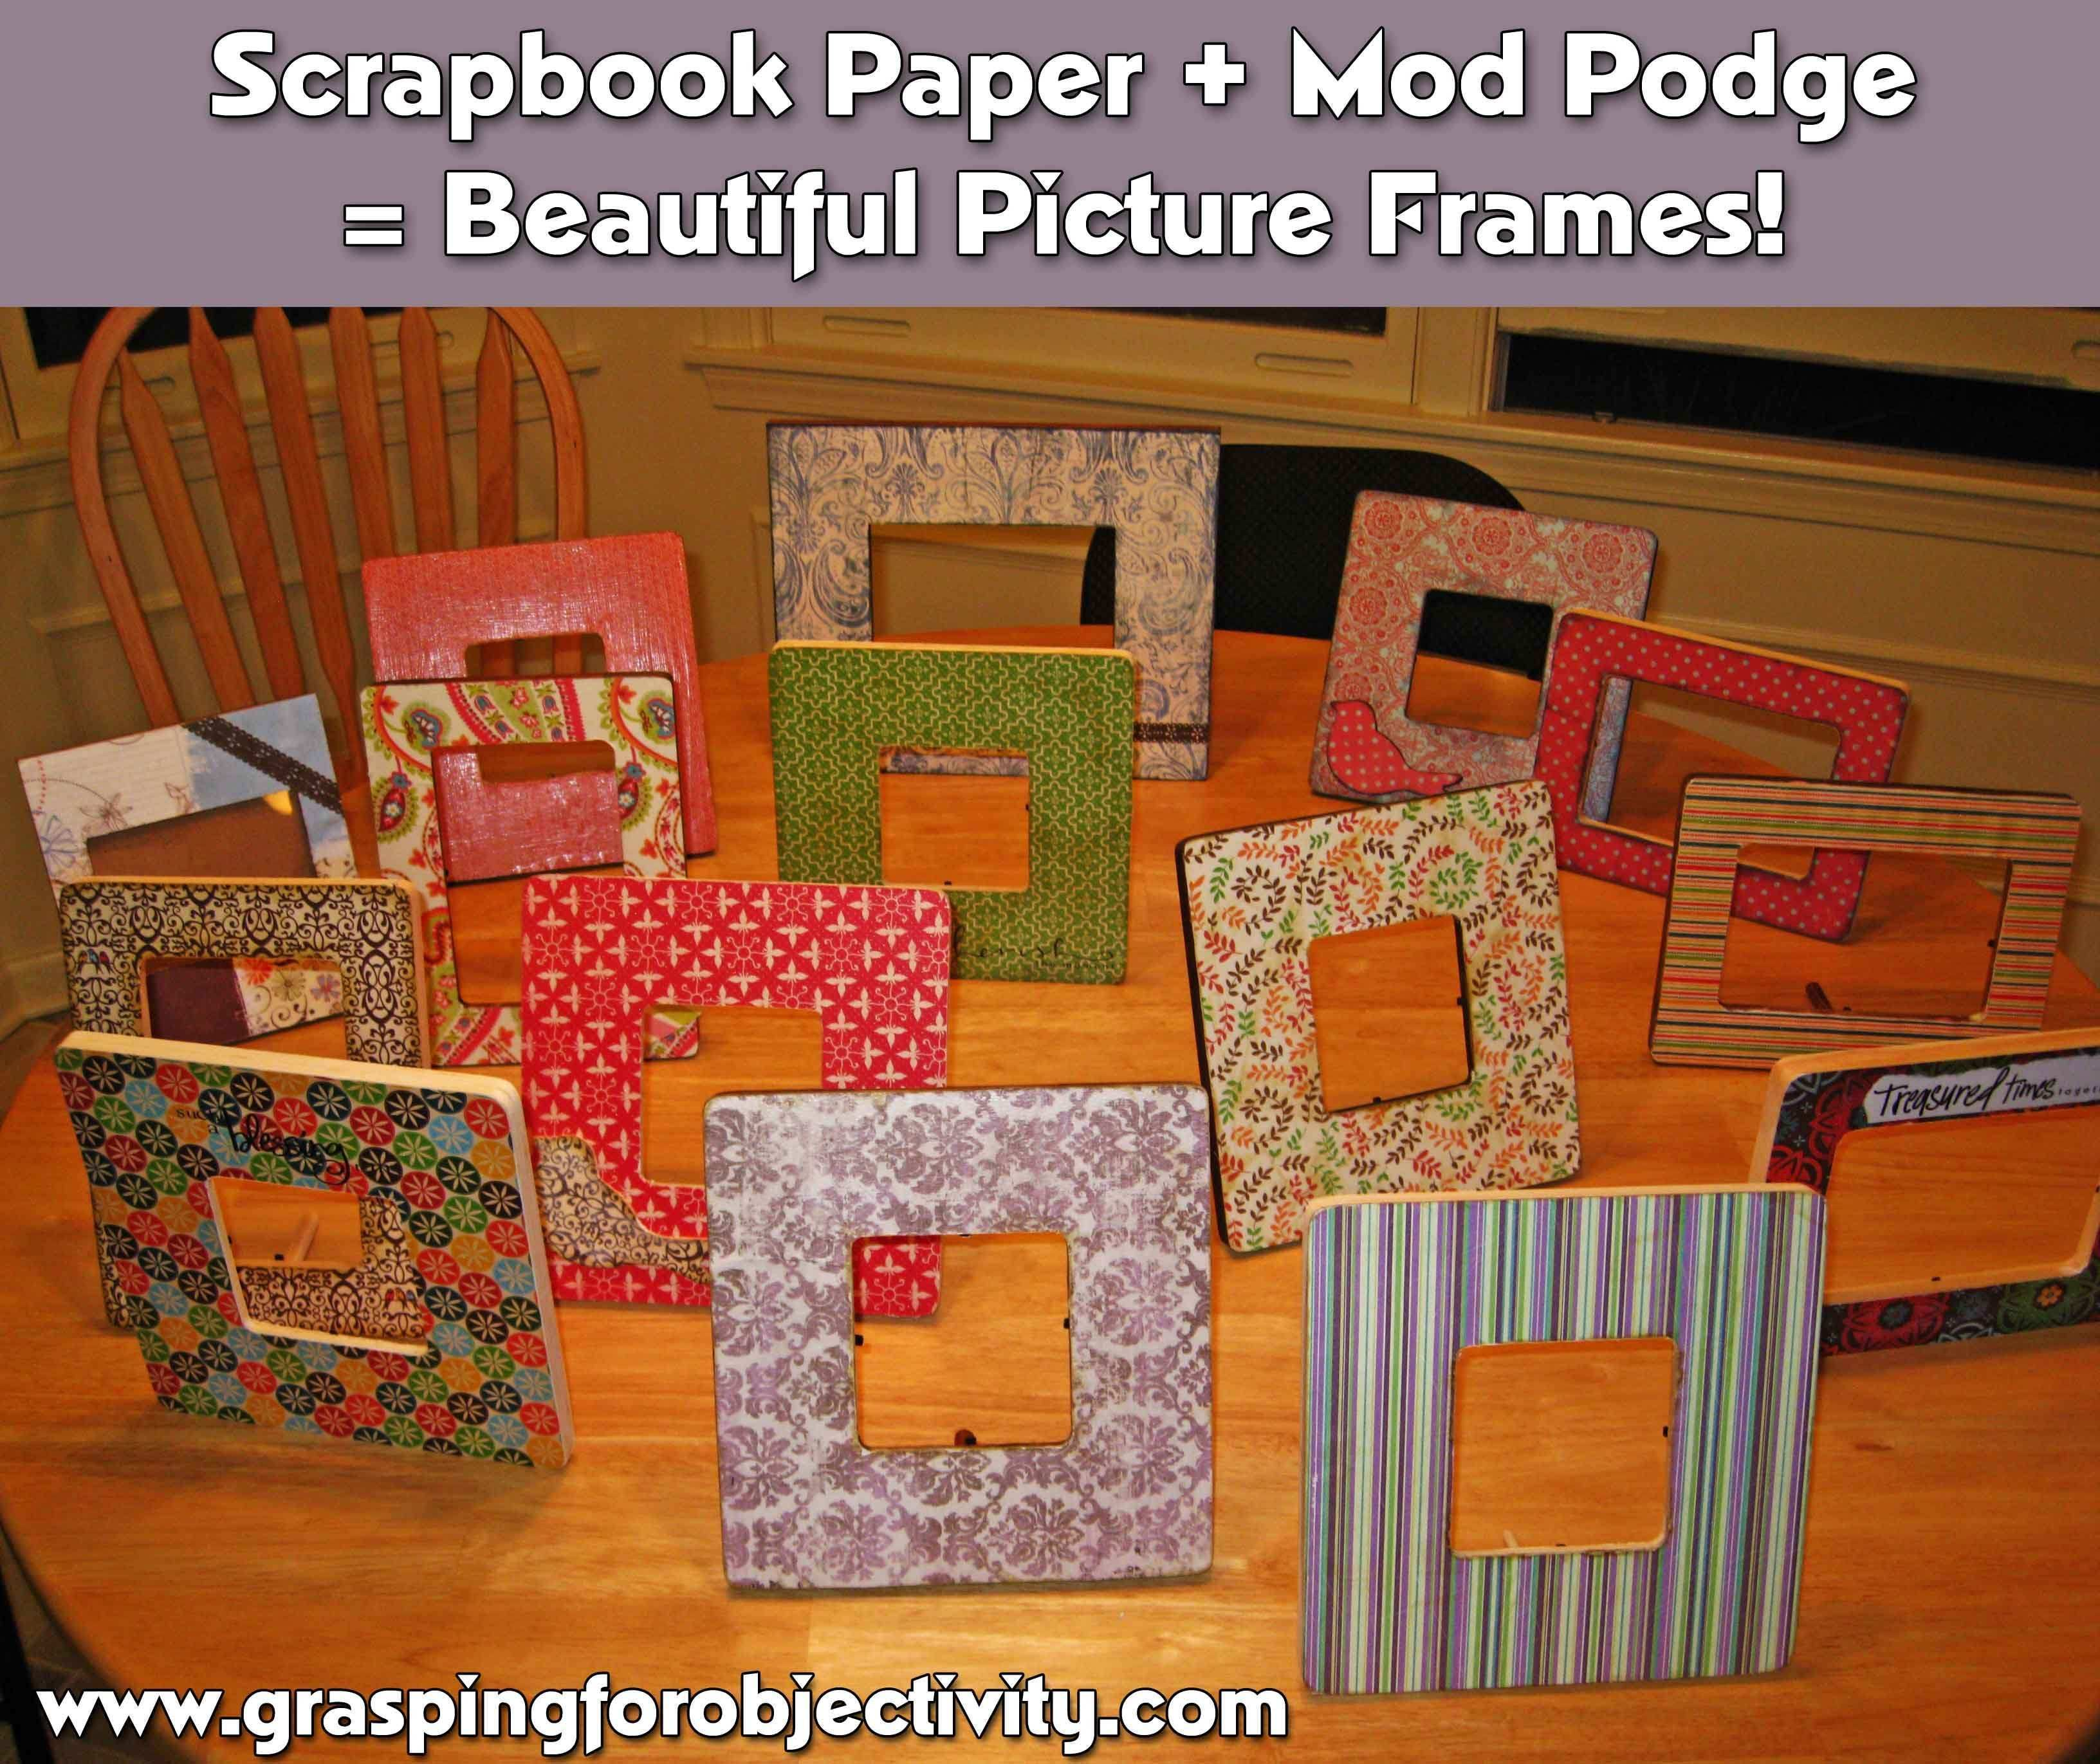 How to make beautiful picture frames with Mod Podge and scrapbook